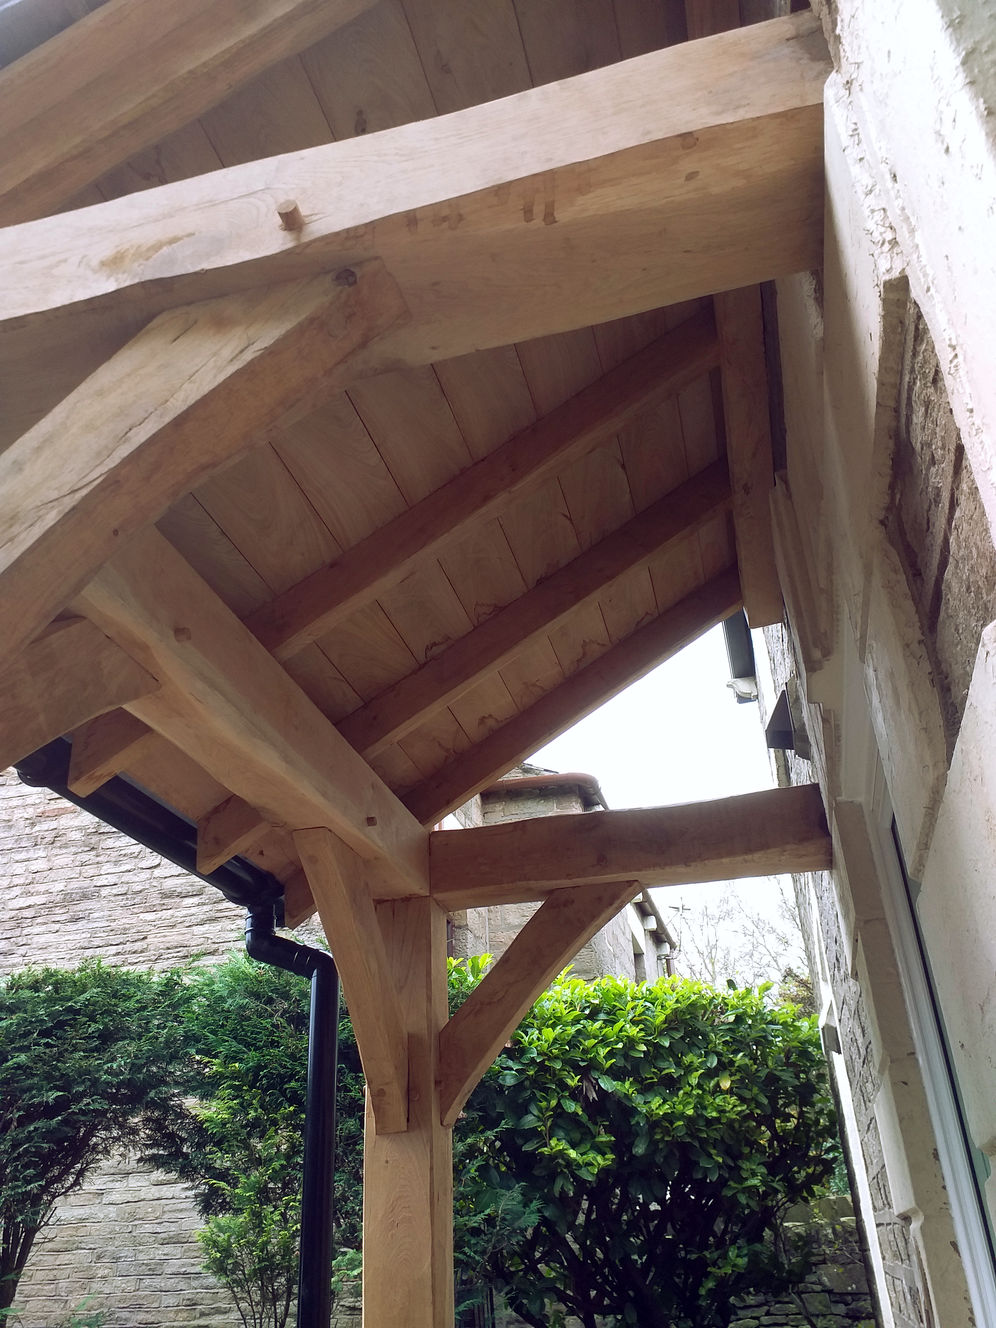 roof detail, Porch with traditional Oak Frame, stone work, pitched roof complete with rain gutters